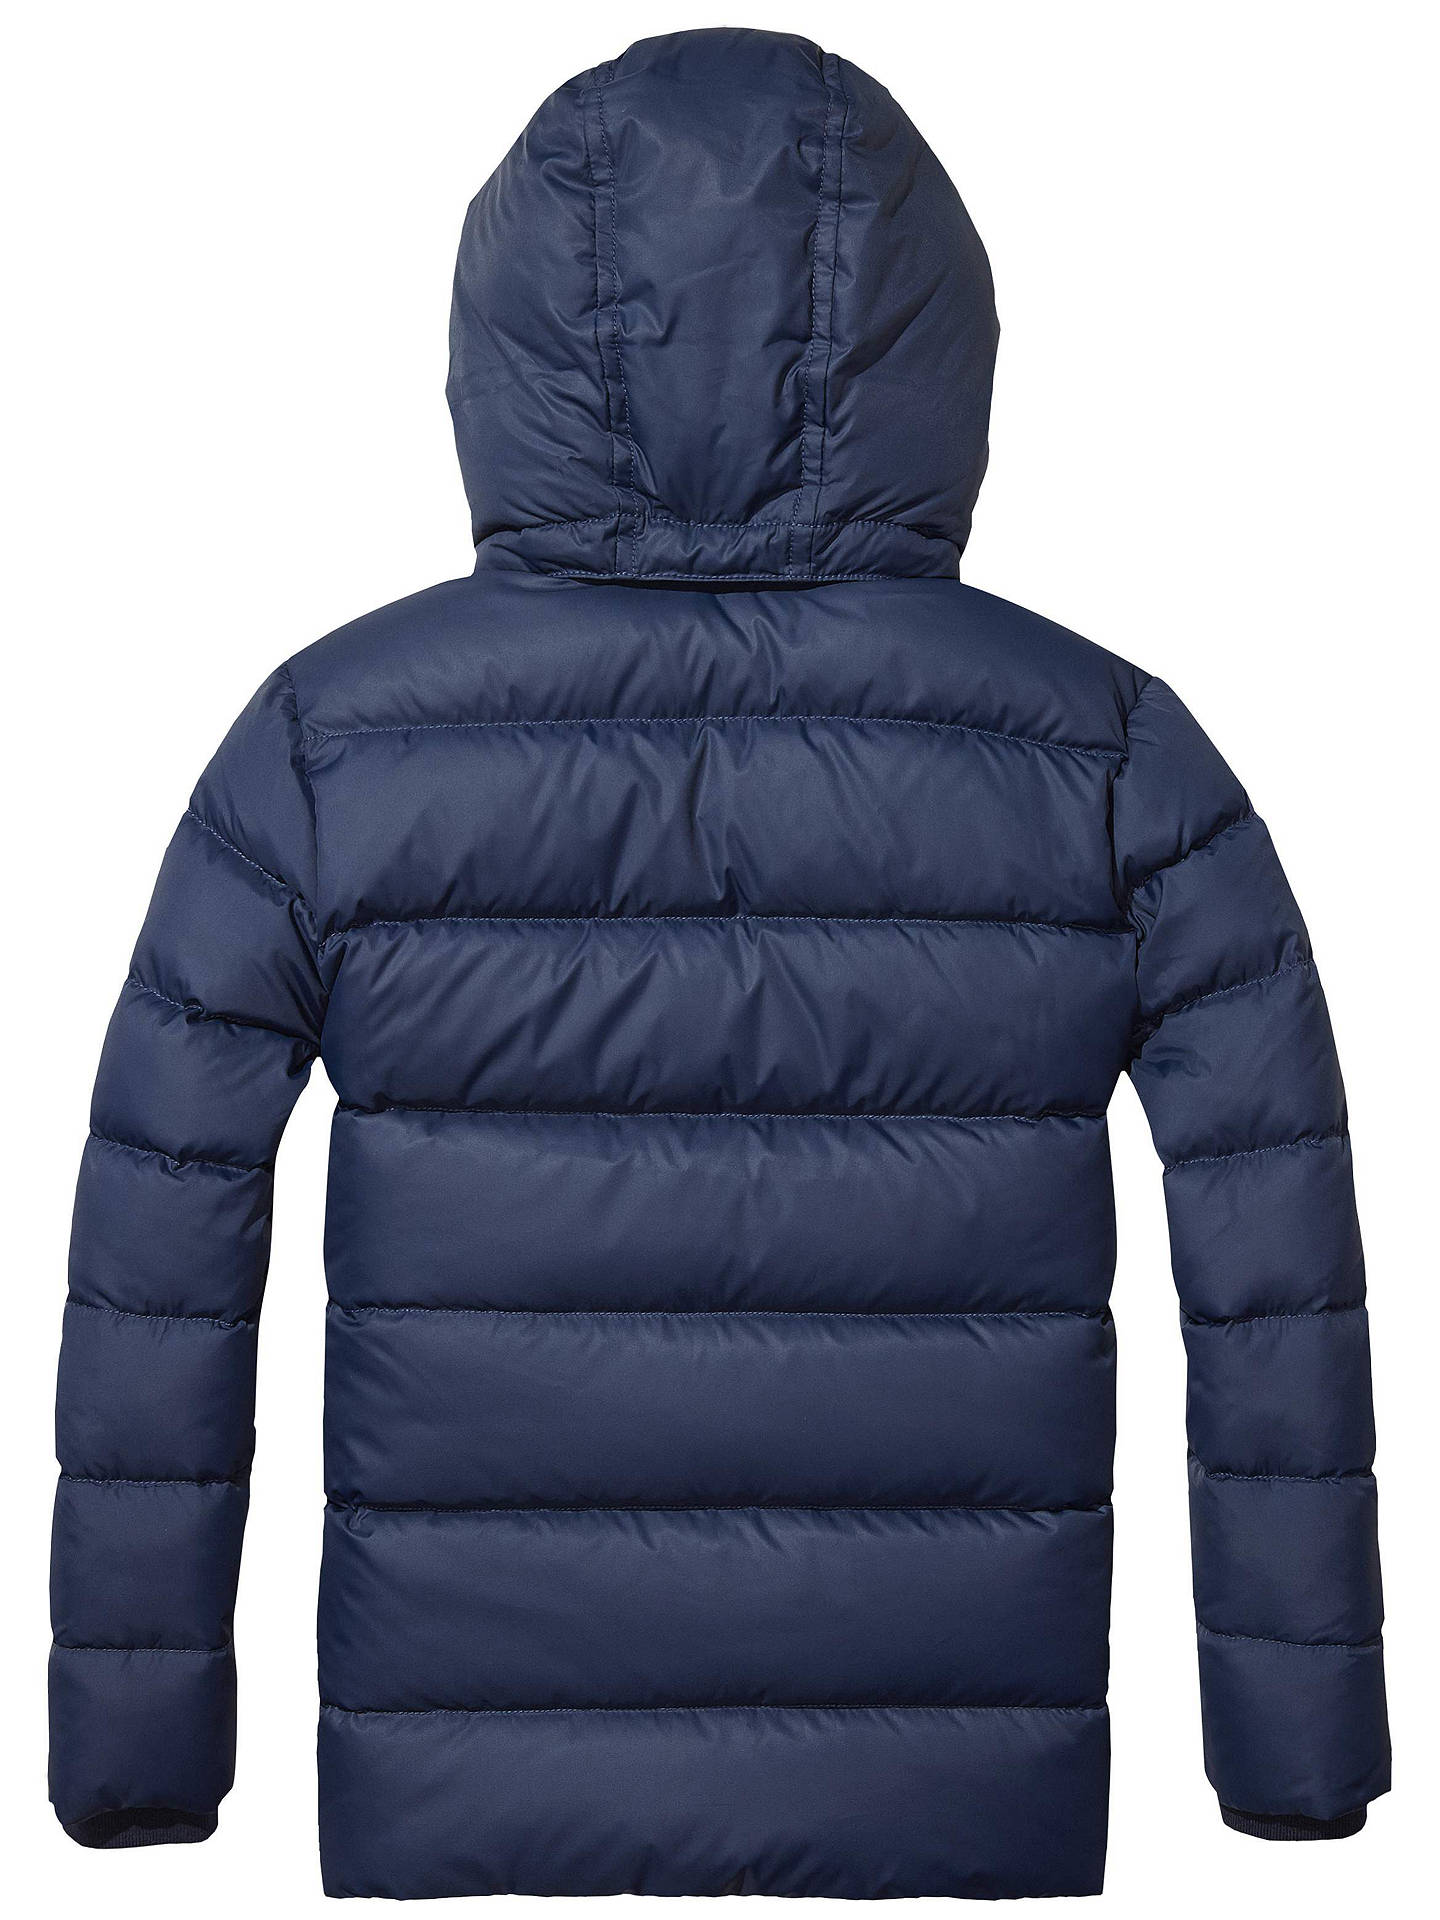 great fit 100% genuine yet not vulgar Tommy Hilfiger Boys' Quilted Jacket, Navy at John Lewis ...